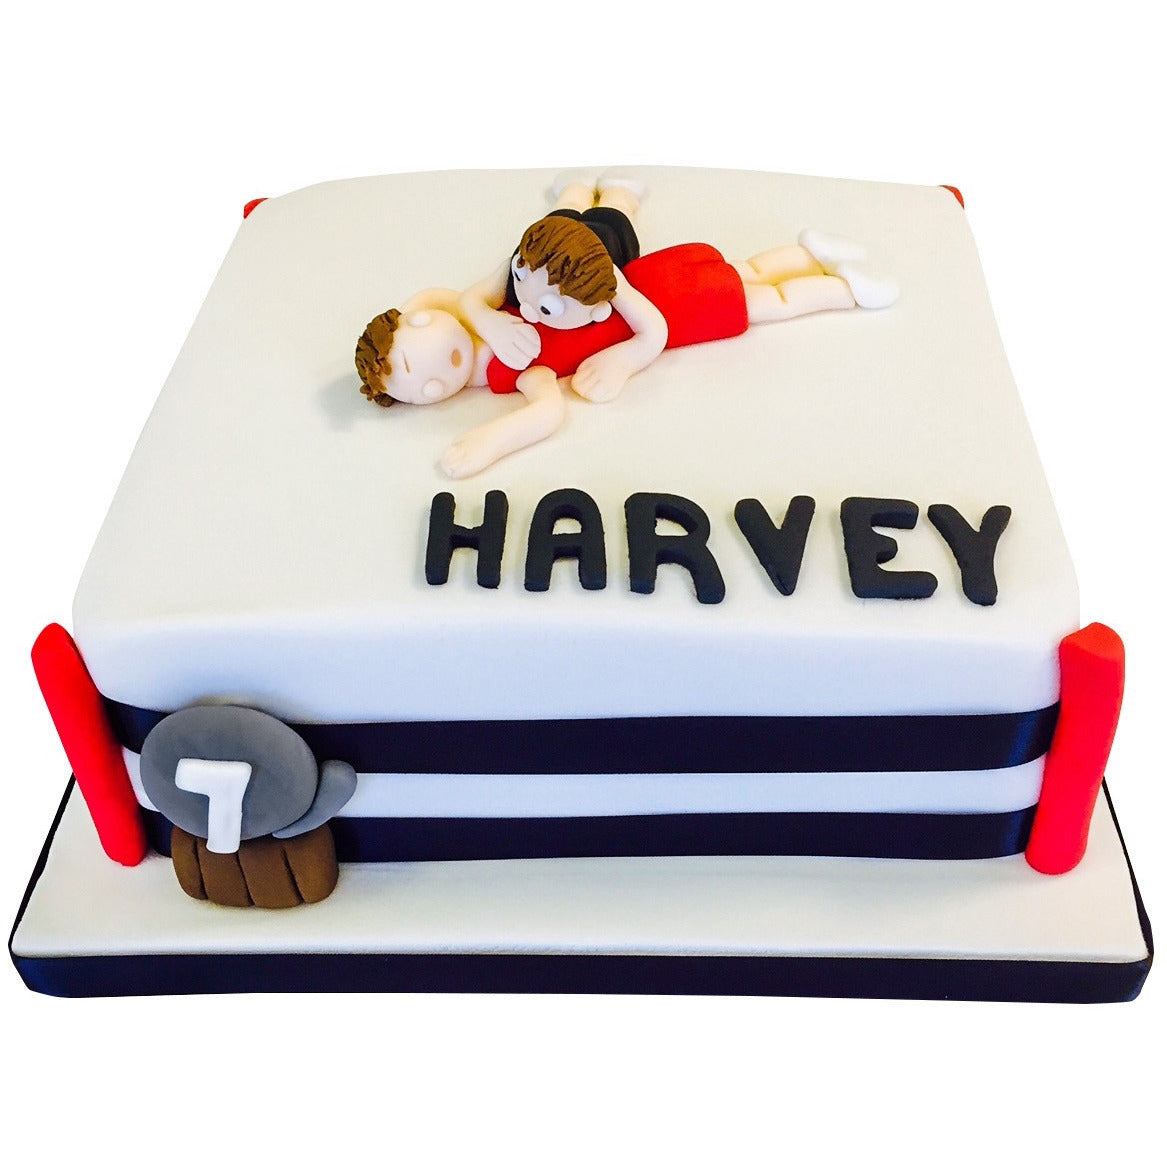 Wrestling Cake Buy Online Free Uk Delivery New Cakes